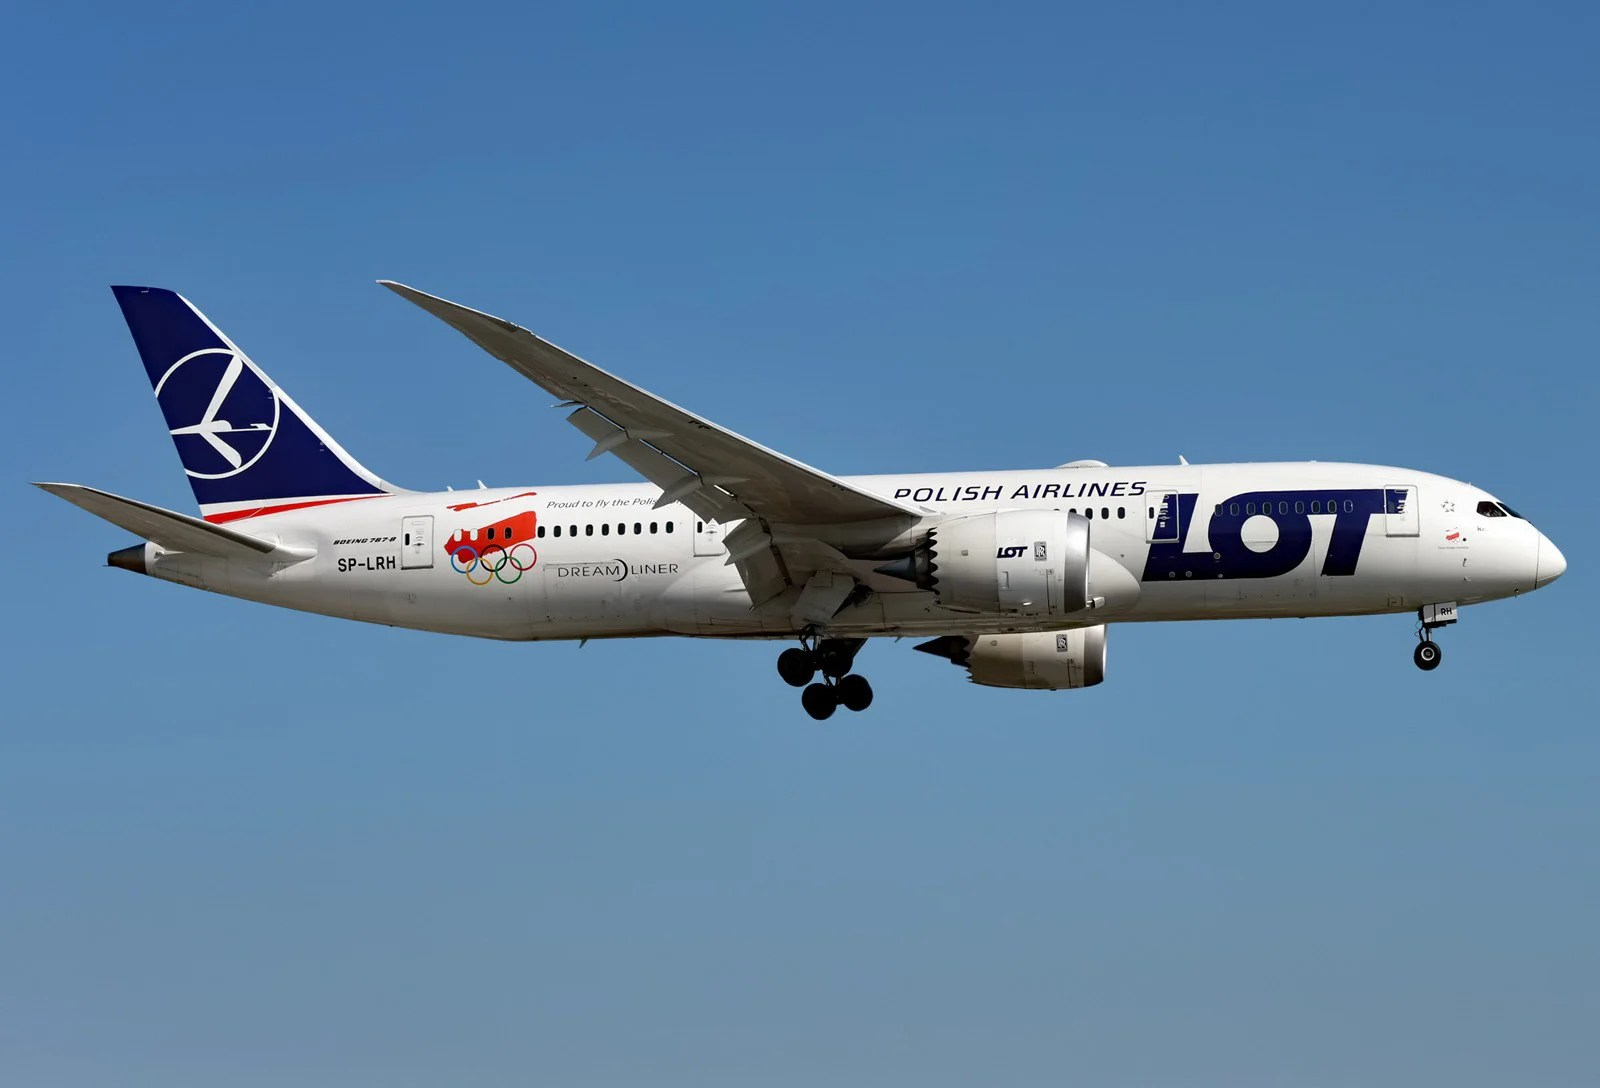 Lot Polish Airlines Adds Washington Dulles To Growing